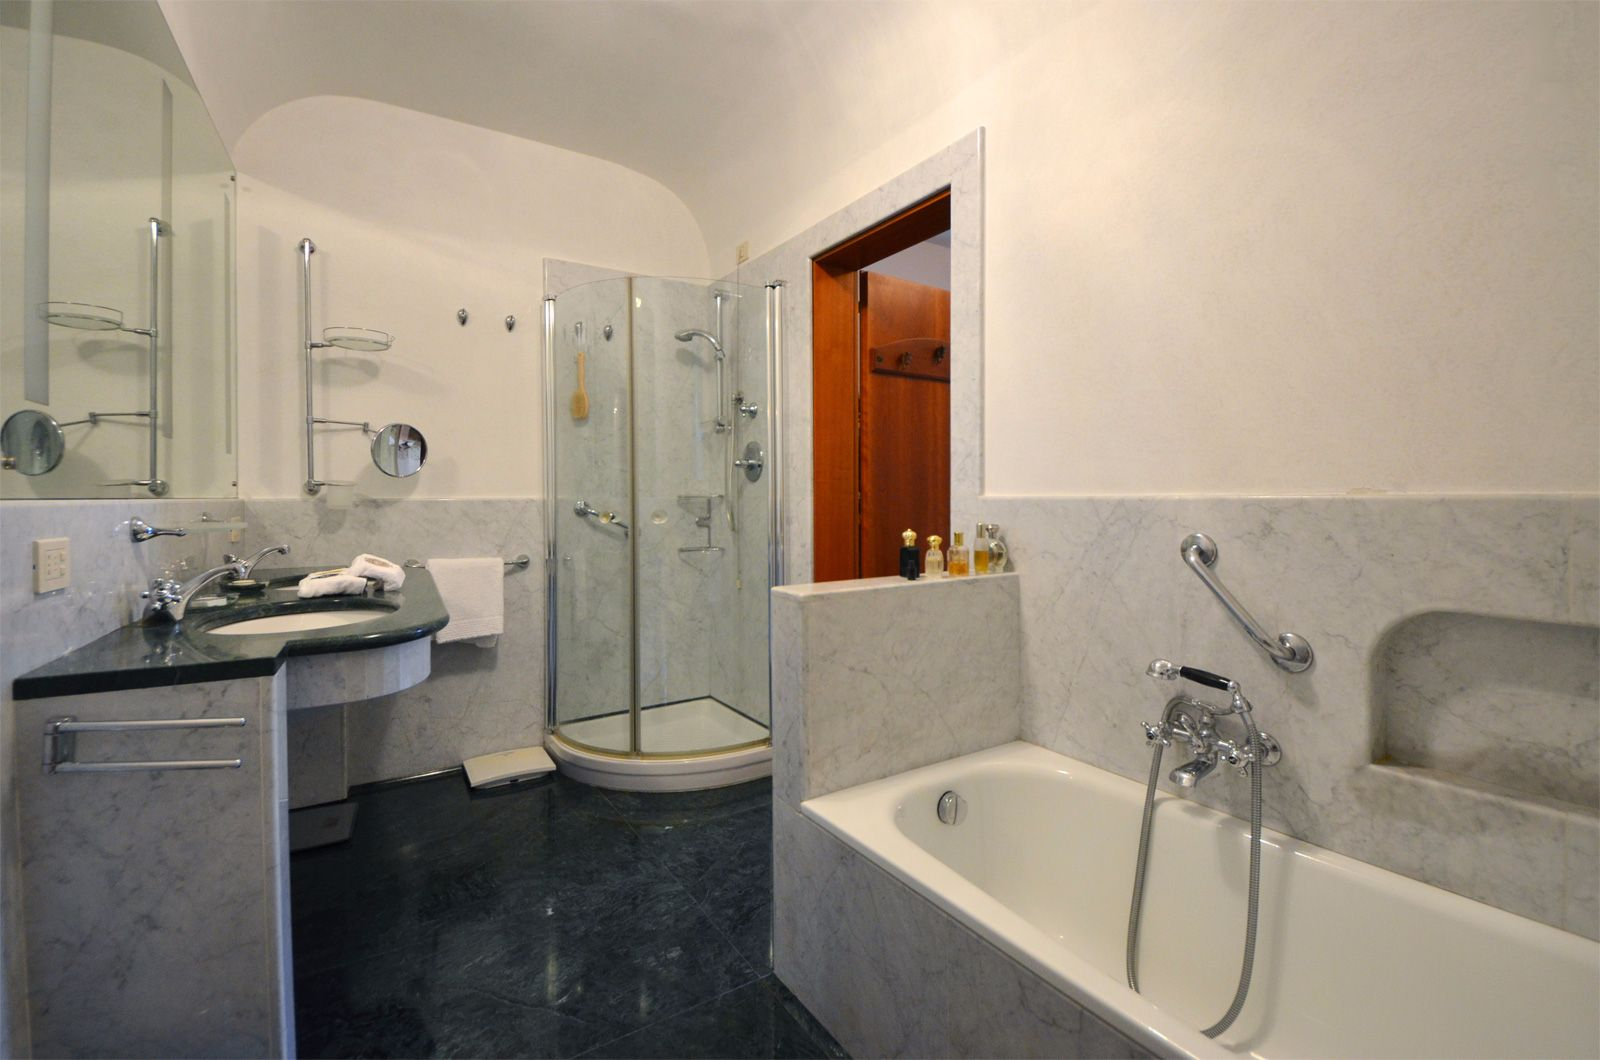 en-suite bathroom with bathtub and large shower cabin